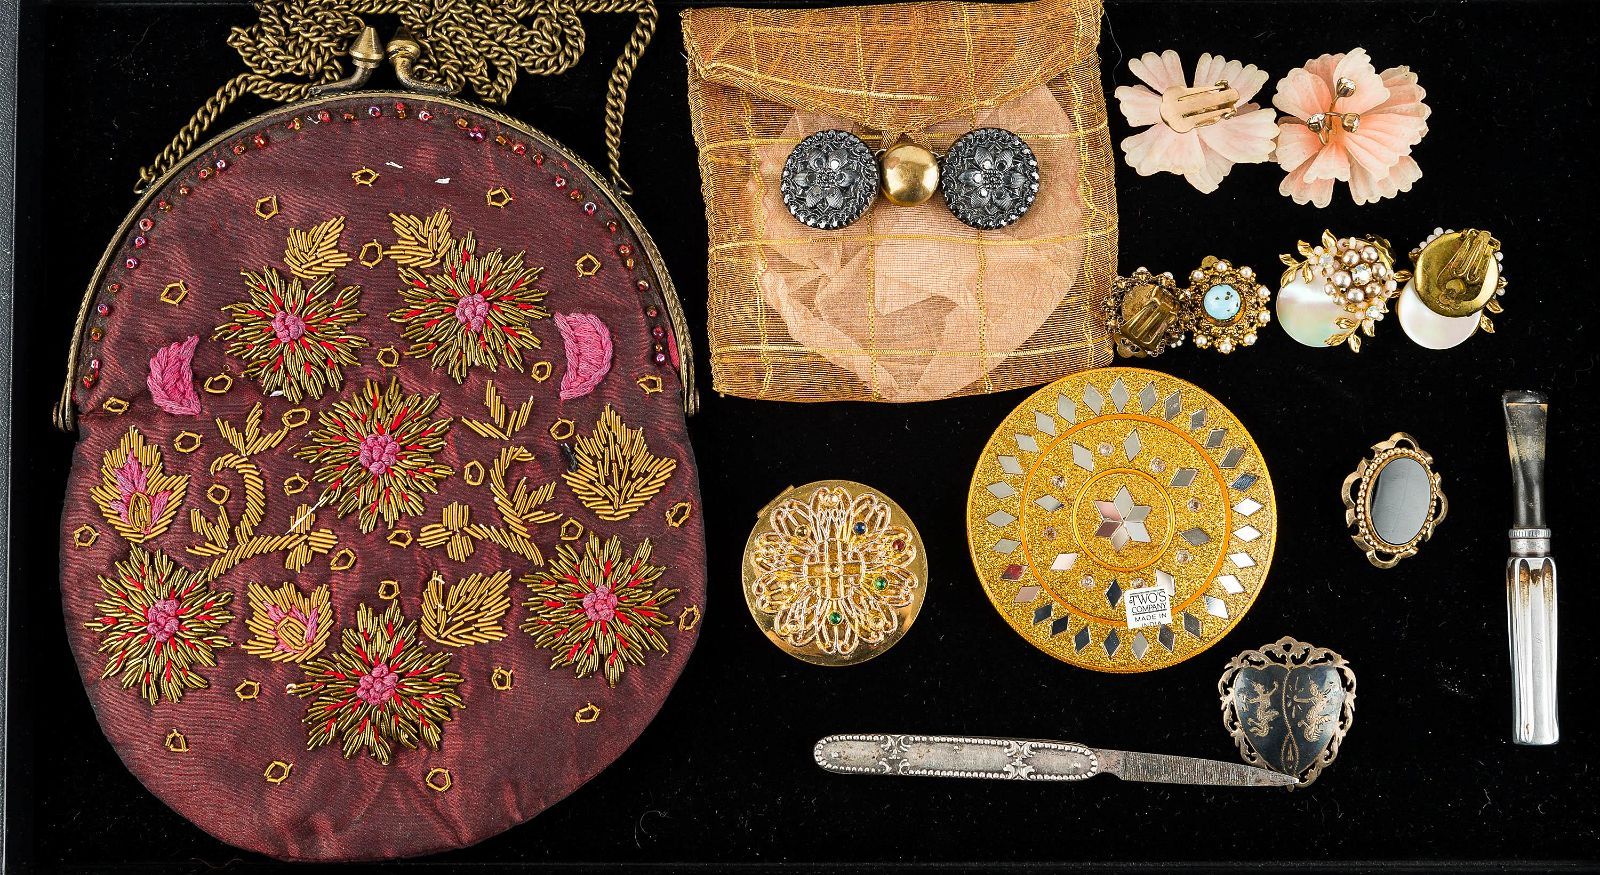 Vintage Purse, Costume Jewelry, and Other Items